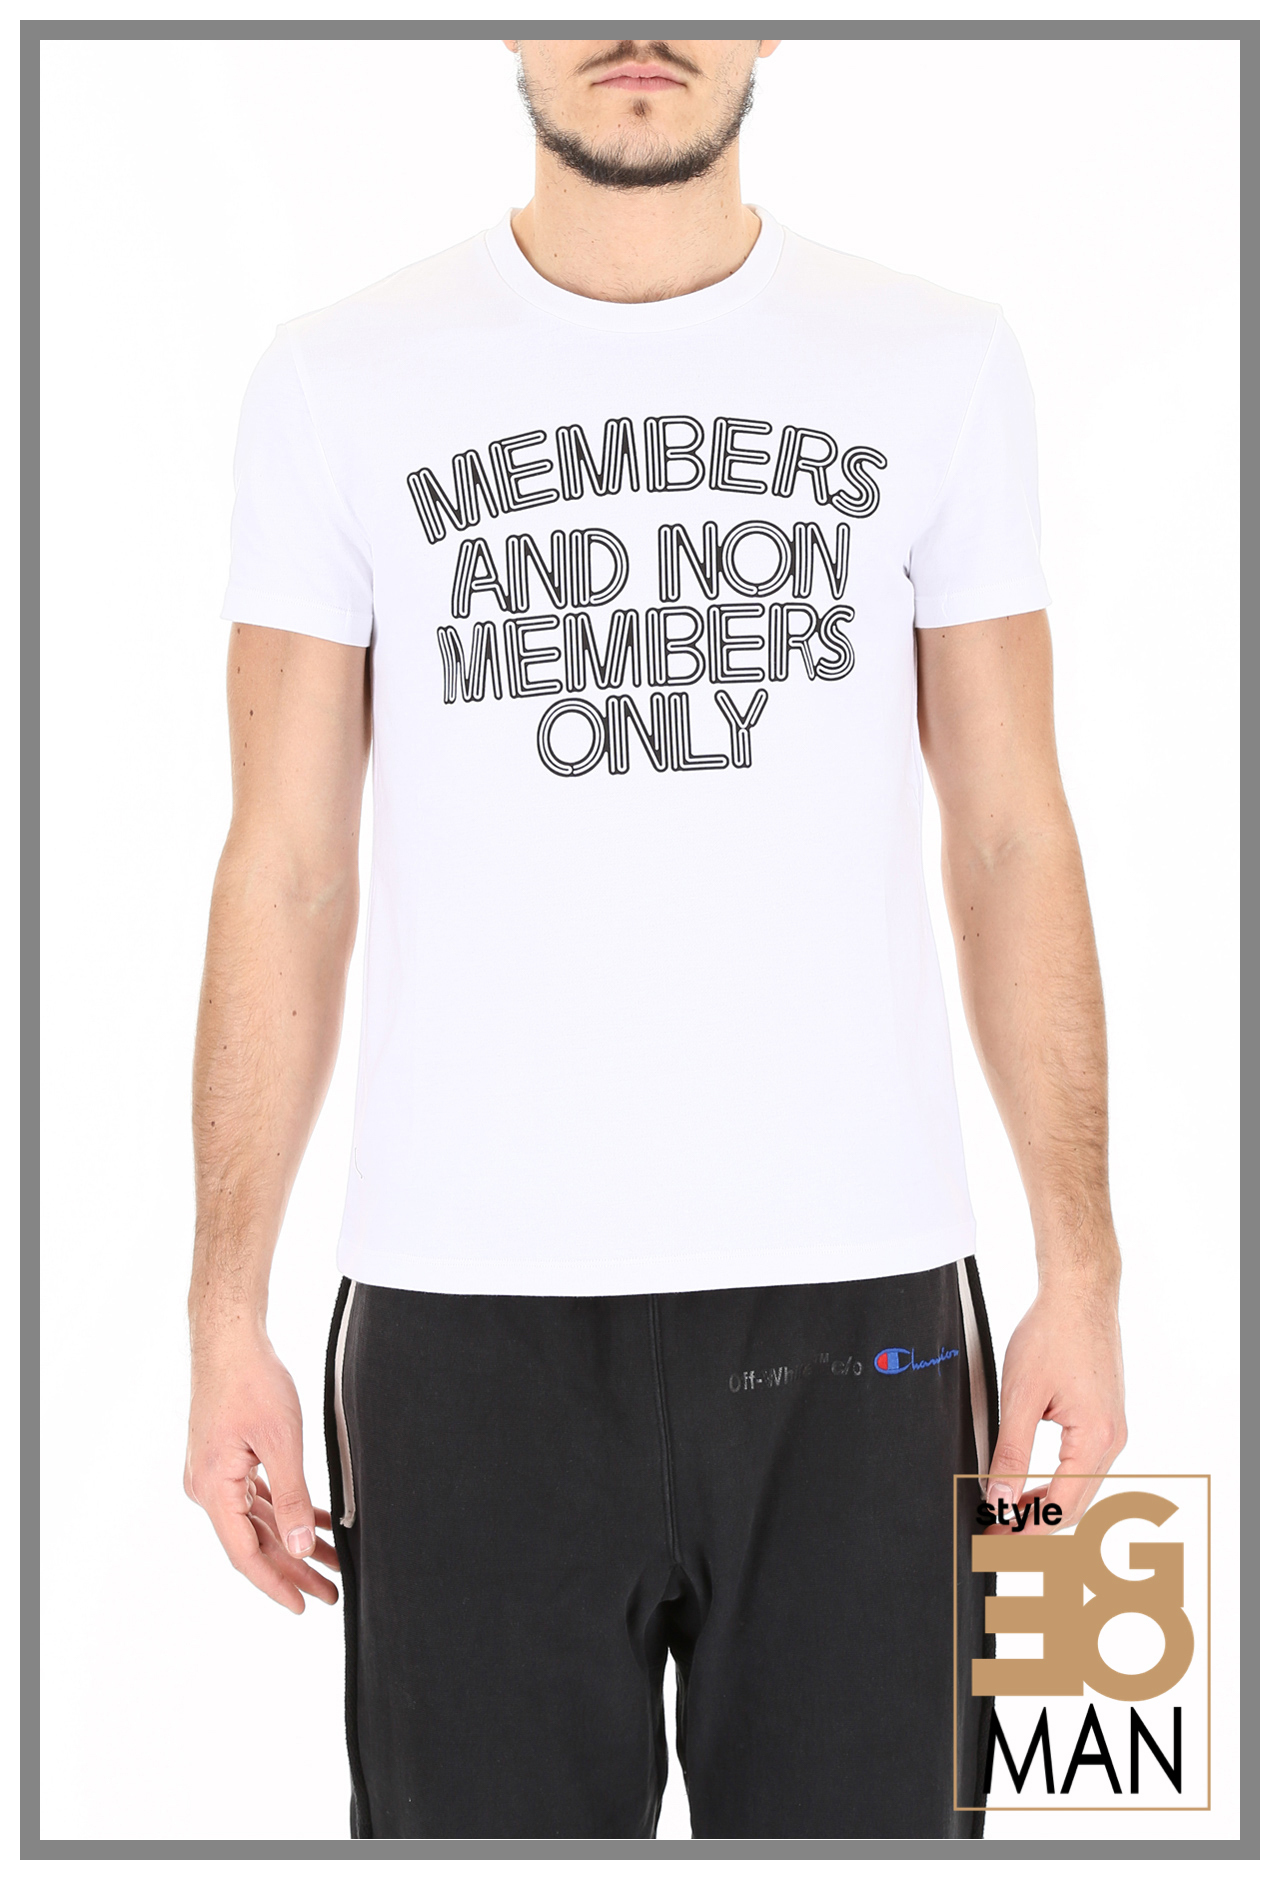 STELLA MCCARTNEY MEMBERS AND NON MEMBERS ONLY T-シャツ